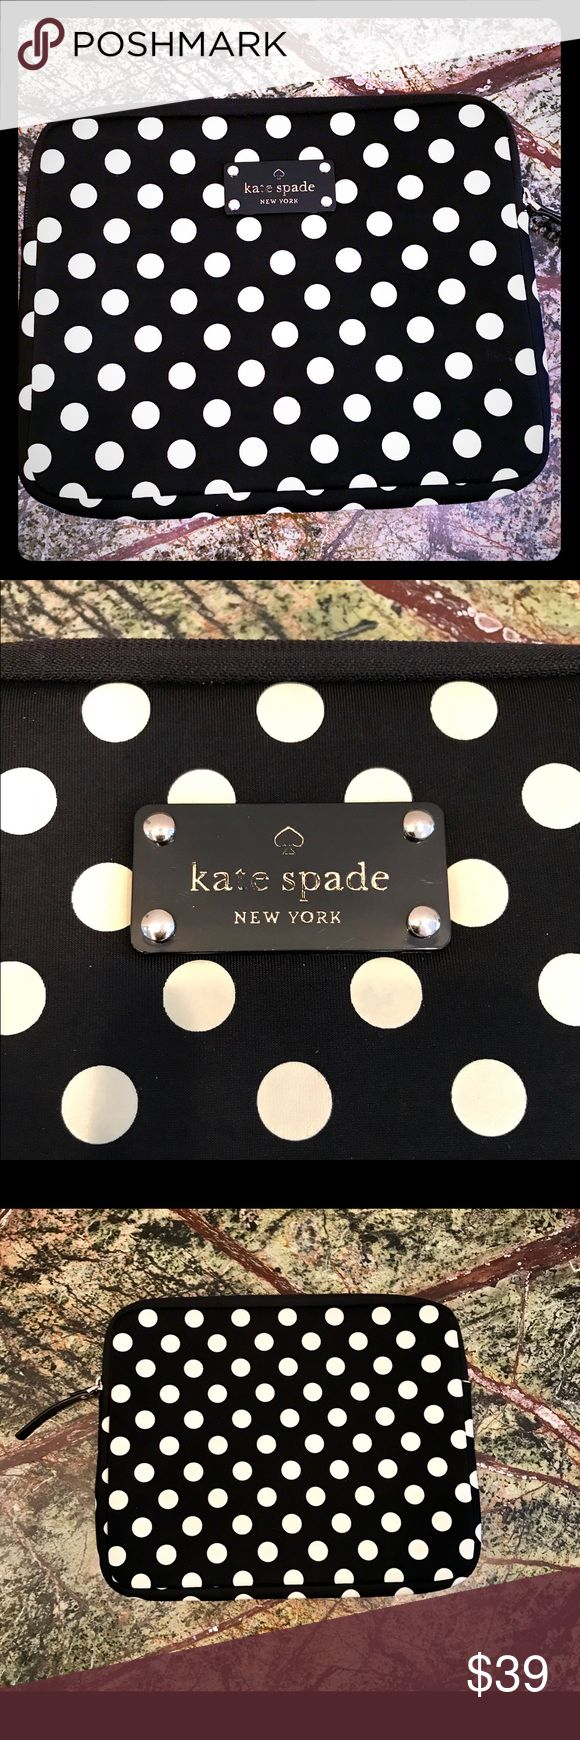 Adorable Kate Spade iPad Case Purchased for my iPad mini but it's for a full size iPad. Like new other than the Kate Spade Logo being slightly worn, otherwise not a spot on it. Open to reasonable offers! Bundle and save on shipping! kate spade Accessories Tablet Cases